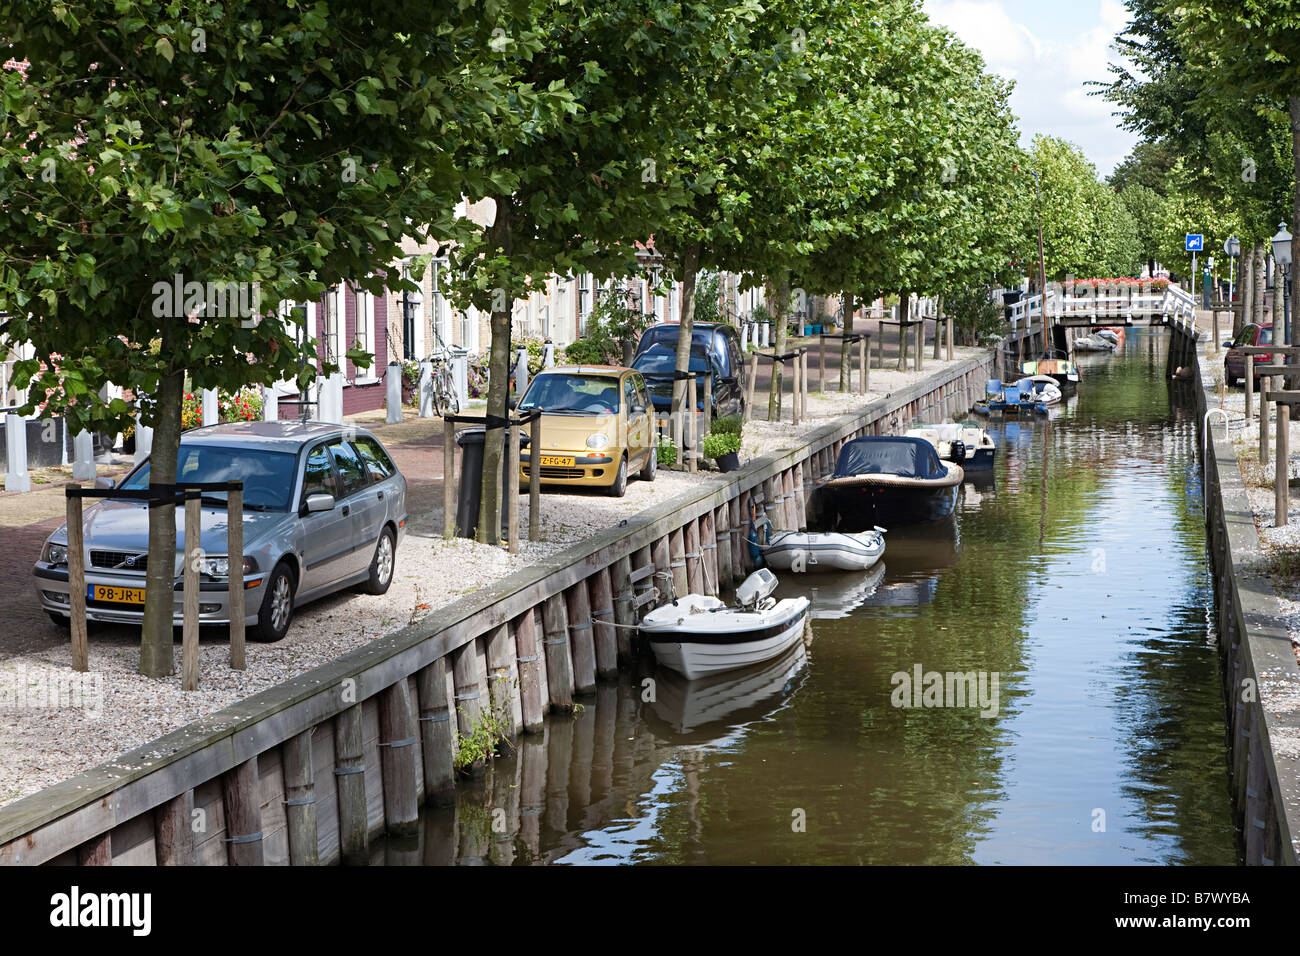 Canal with boats and cars parked alongside in residential area of Harlingen Friesland Netherlands - Stock Image